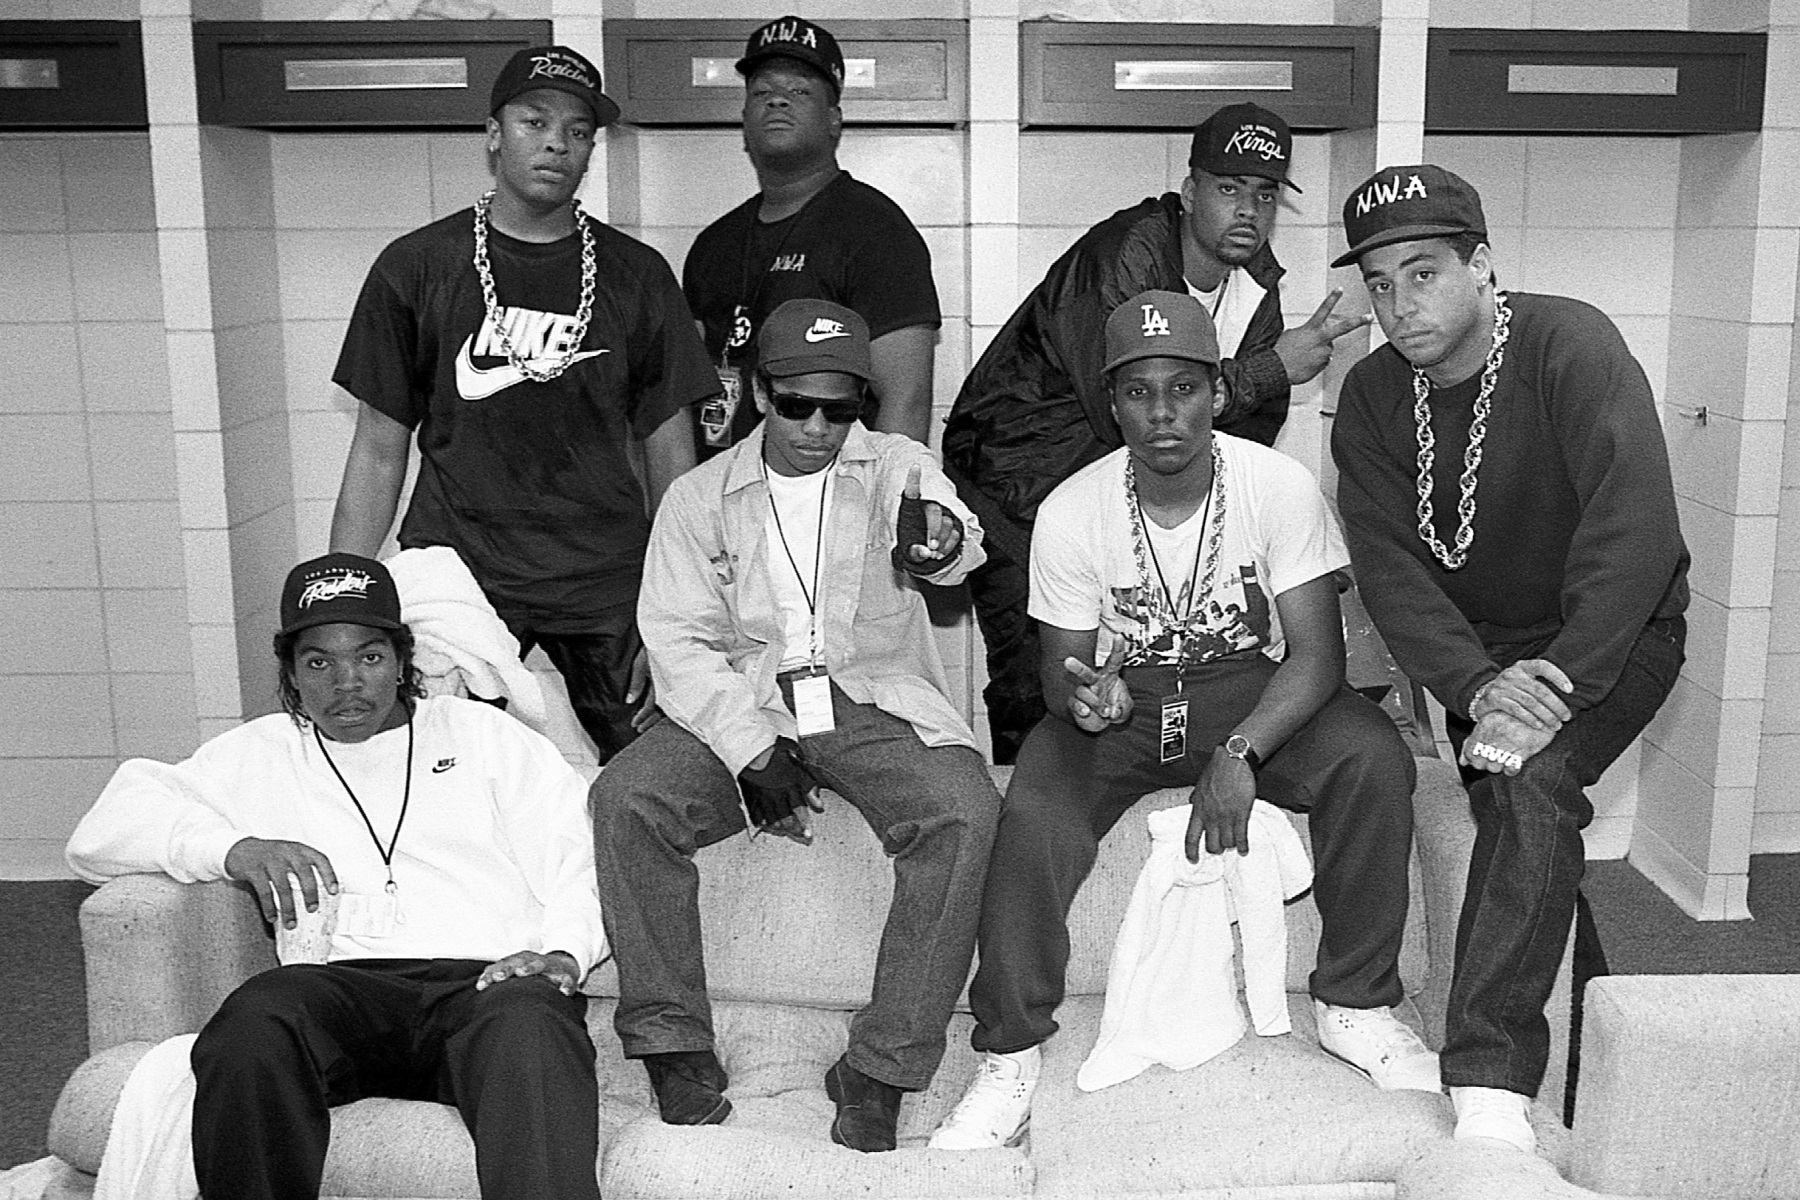 KANSAS CITY - JUNE 1989:  Ice Cube, Eazy-E, MC Ren. DJ Yella (front), and Dr. Dre, rapper Laylaw from Above The Law and rapper The D.O.C. (rear) poses for photos before their performances during N.W.A.'s 'Straight Outta Compton' tour at Kemper Arena in Kansas City, Missouri in June 1989.  (Photo By Raymond Boyd/Getty Images)